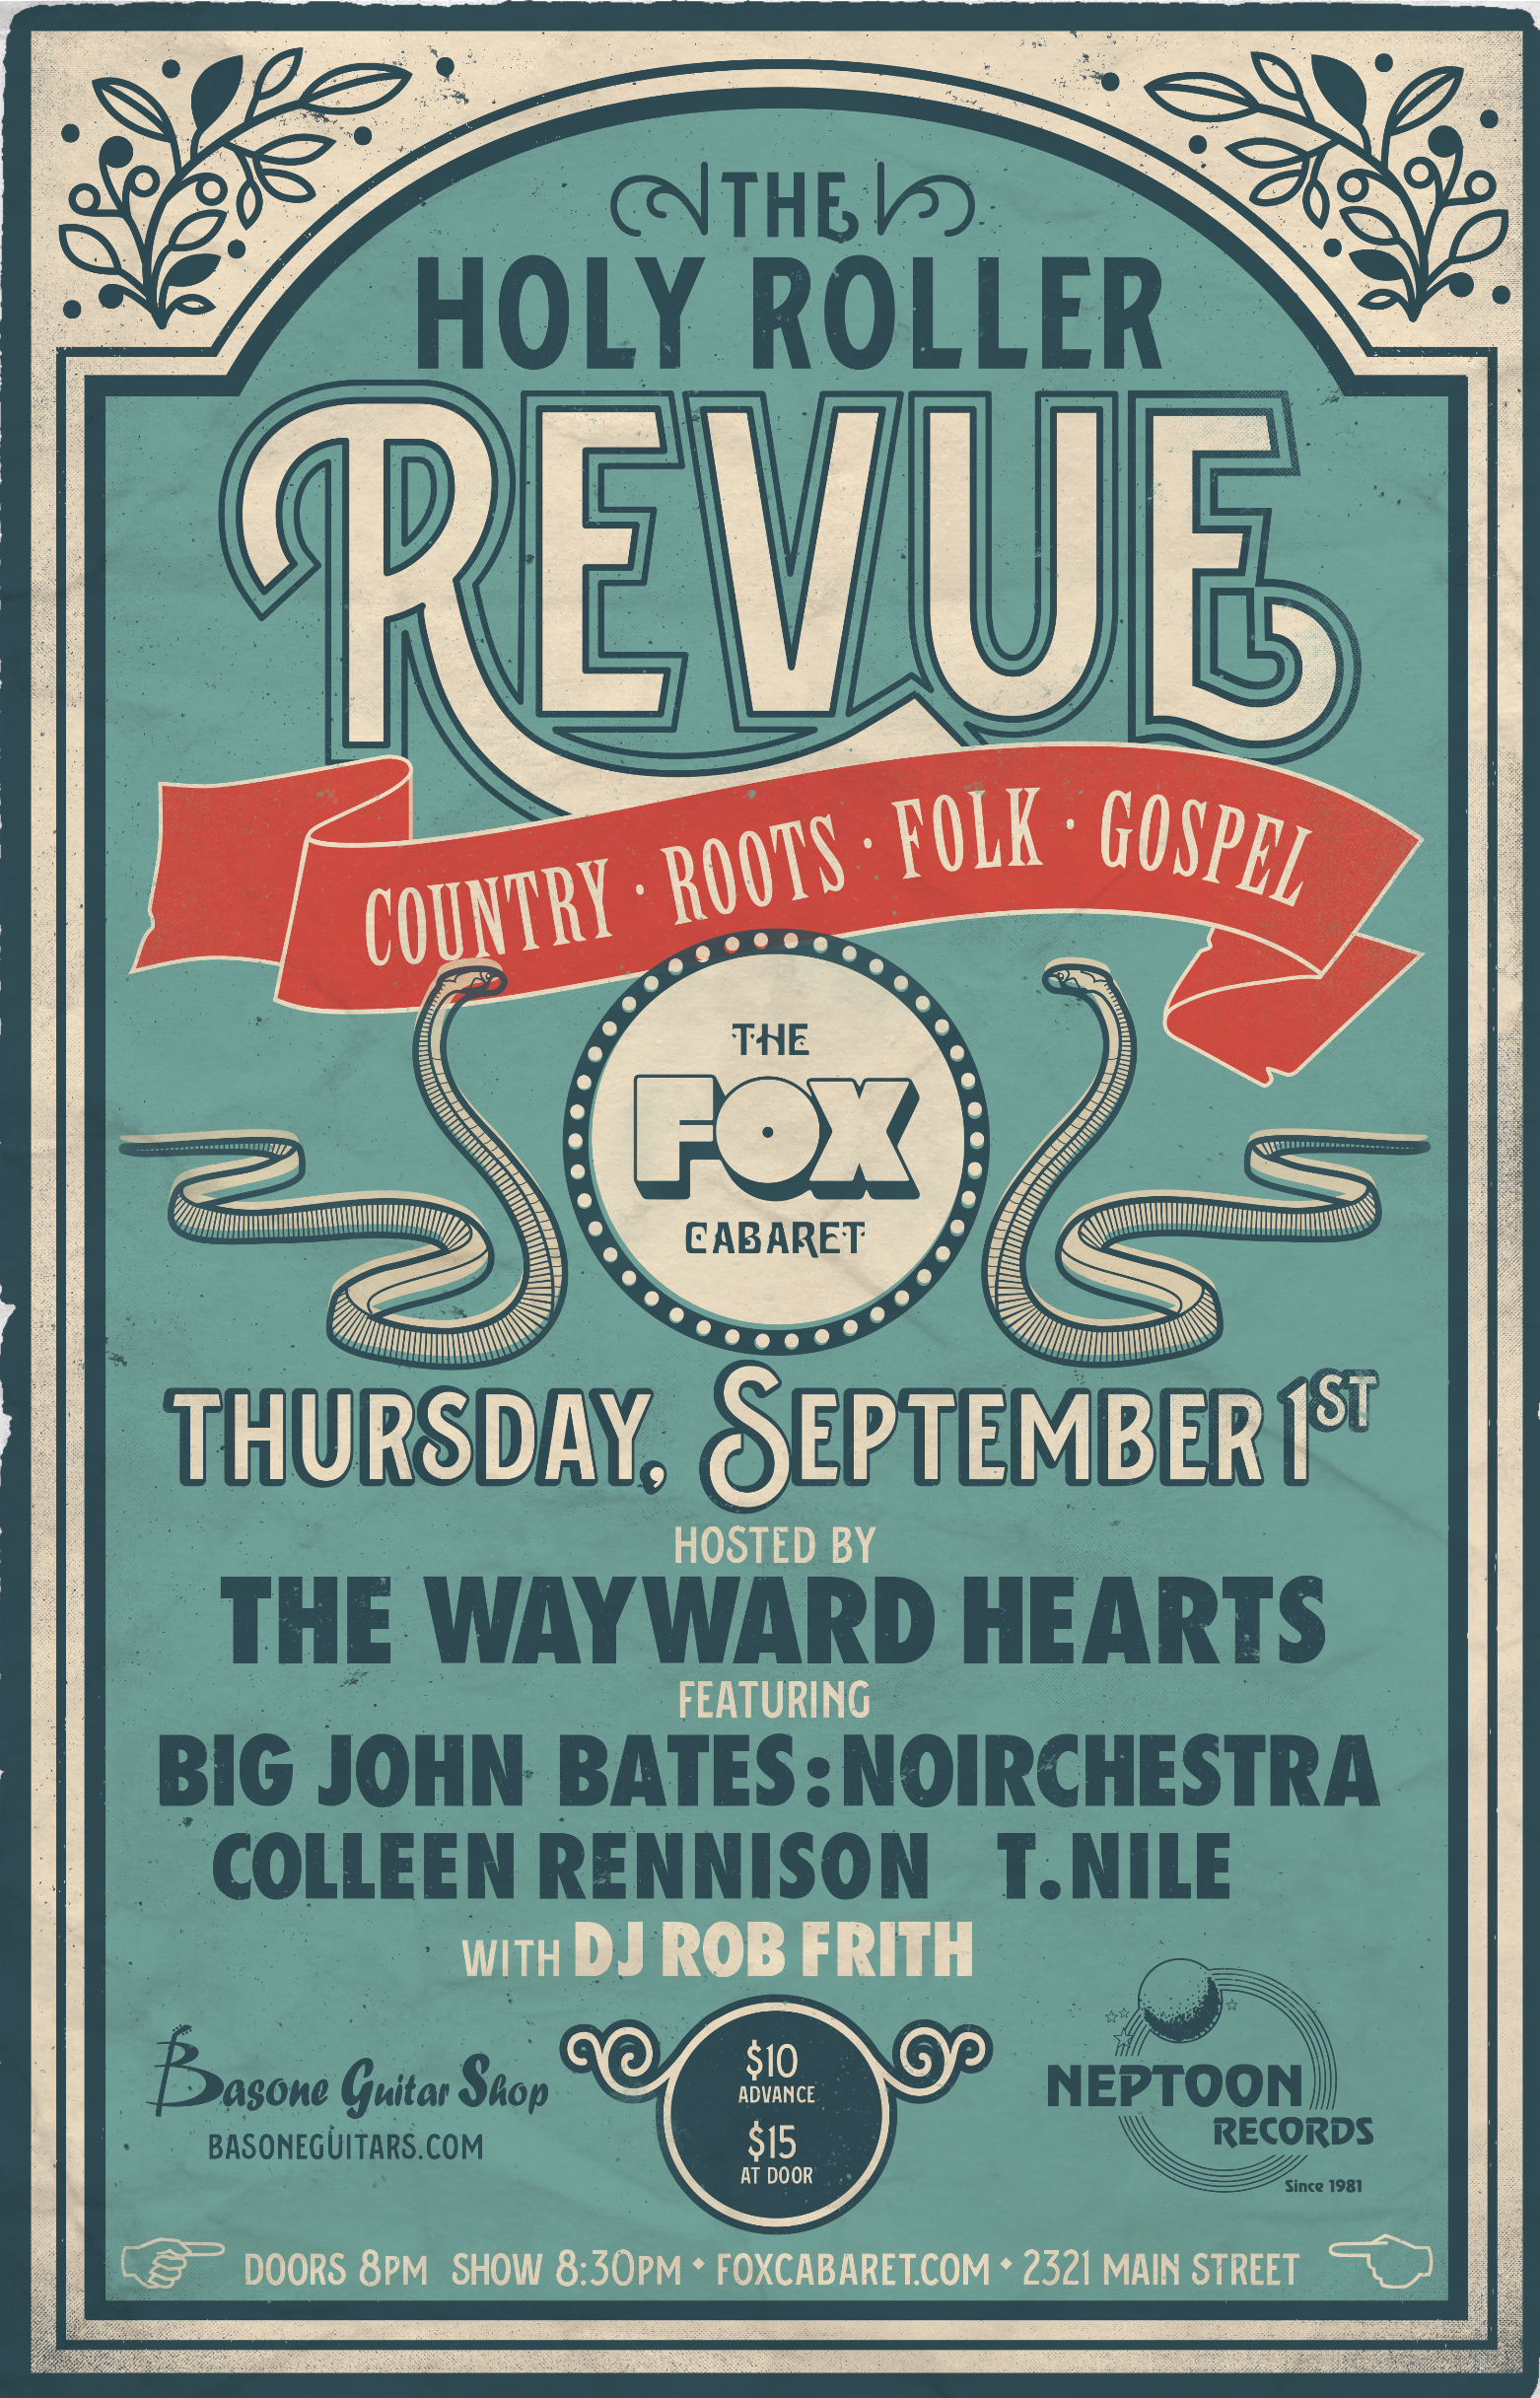 Poster design vancouver - Vintage Inspired Poster Design For Country Roots Folk Music Series In Vancouver